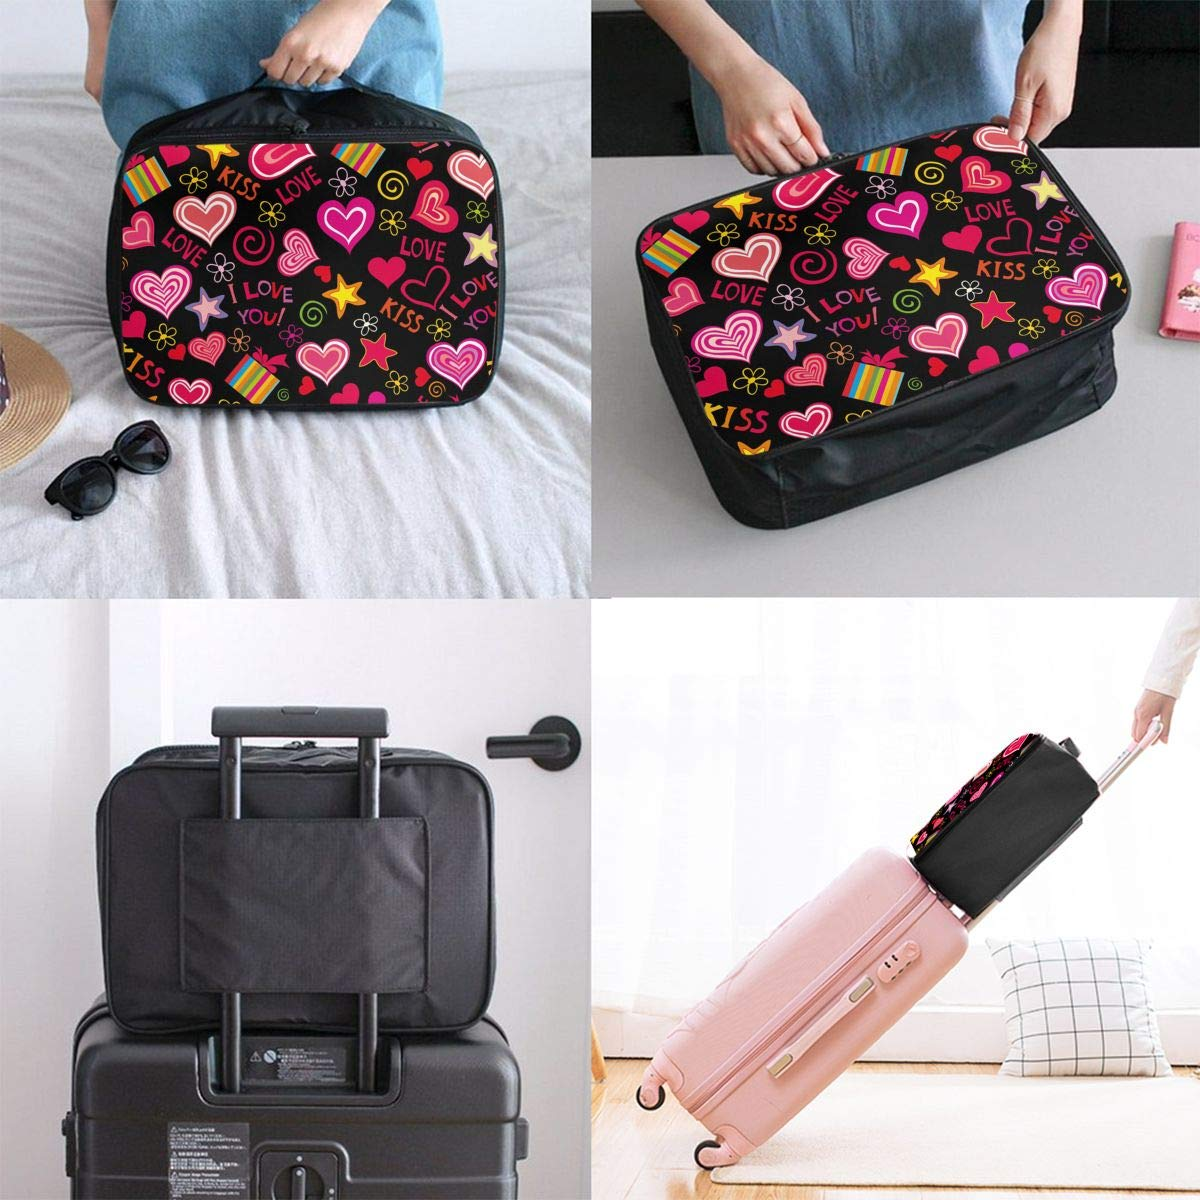 Travel Luggage Duffle Bag Lightweight Portable Handbag Love You Heart Stars Large Capacity Waterproof Foldable Storage Tote